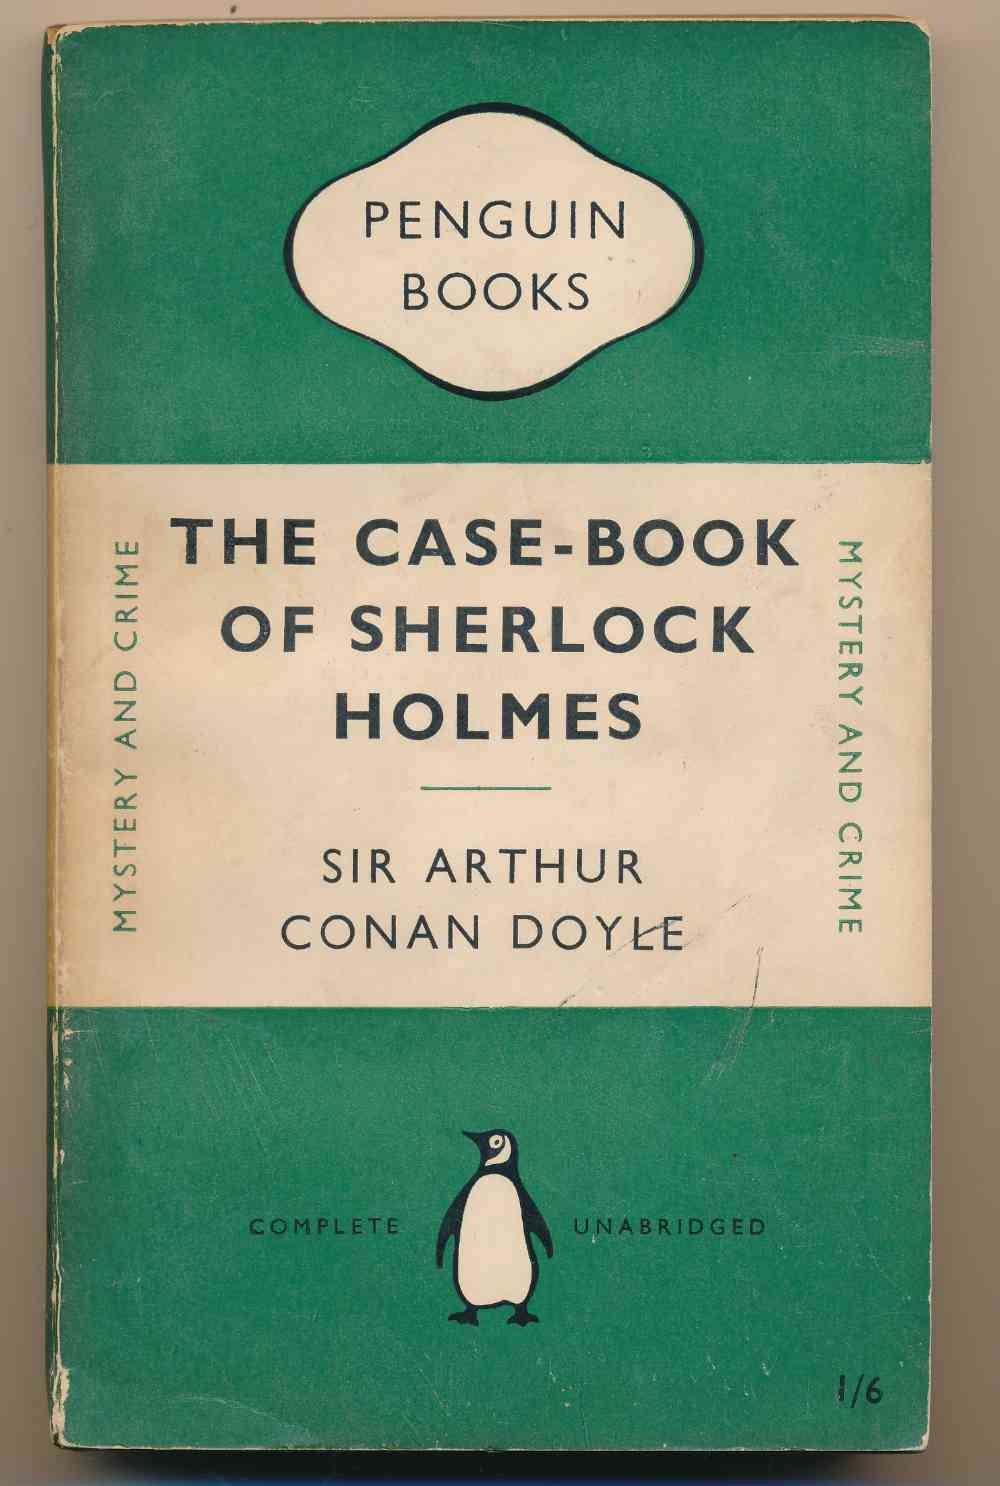 The case-book of Sherlock Homes